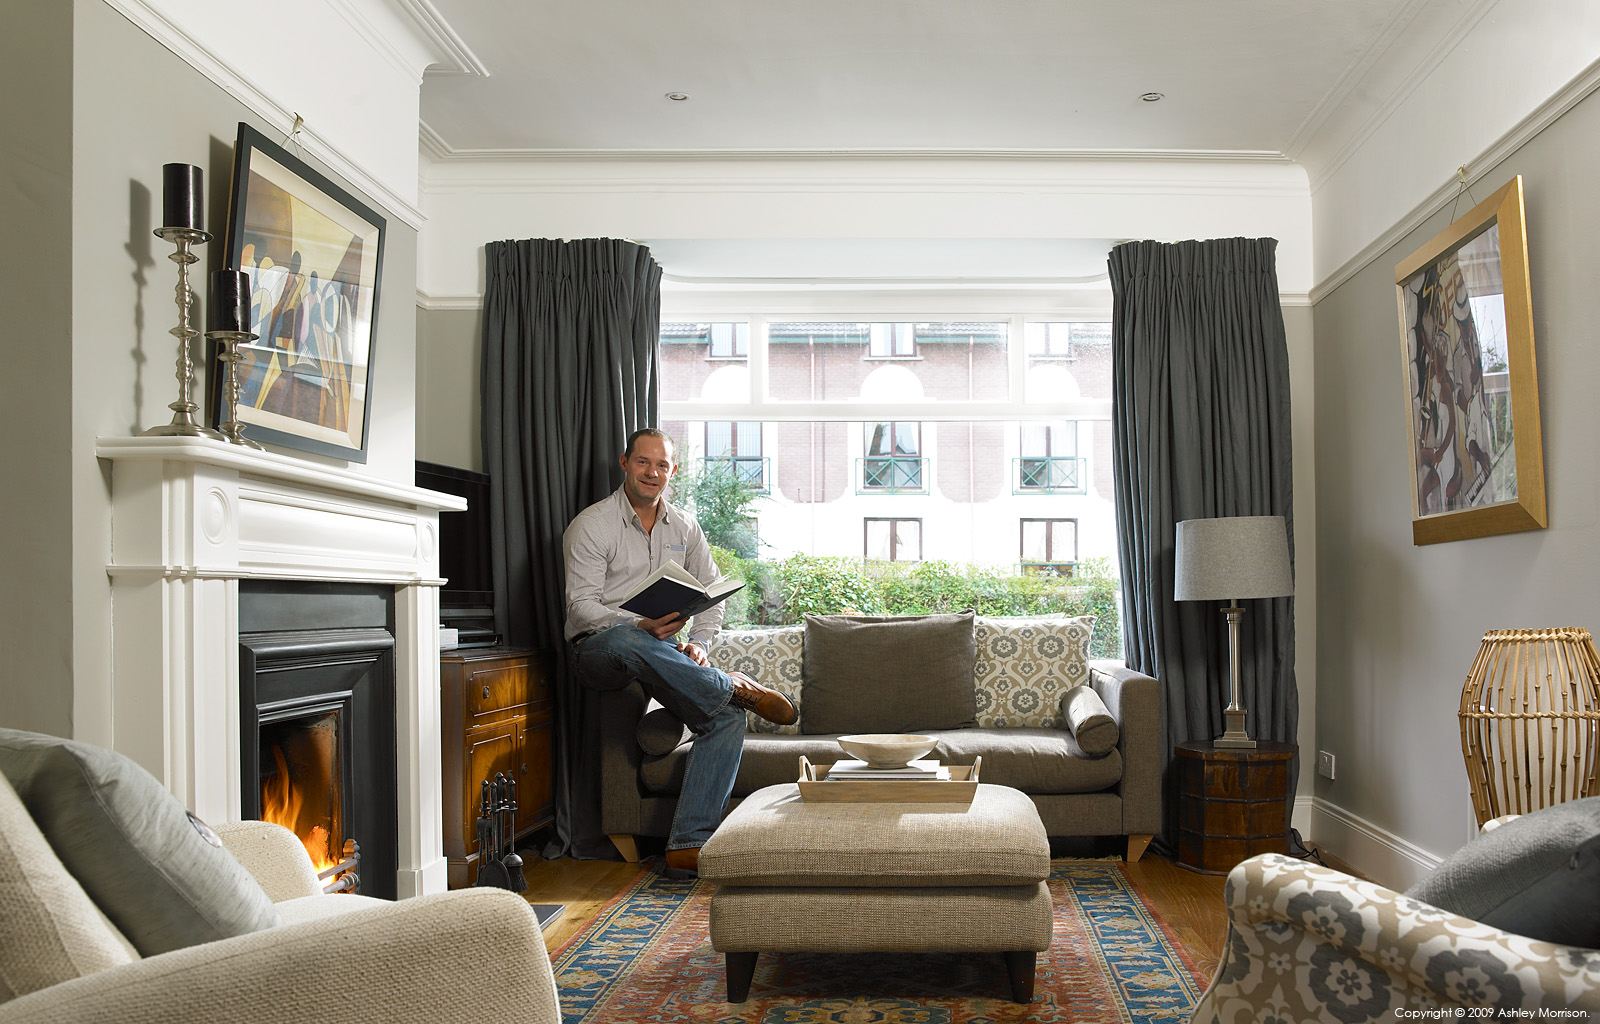 Andrew Webb in the sitting room of his semi detached house in the Belmont area of Belfast.